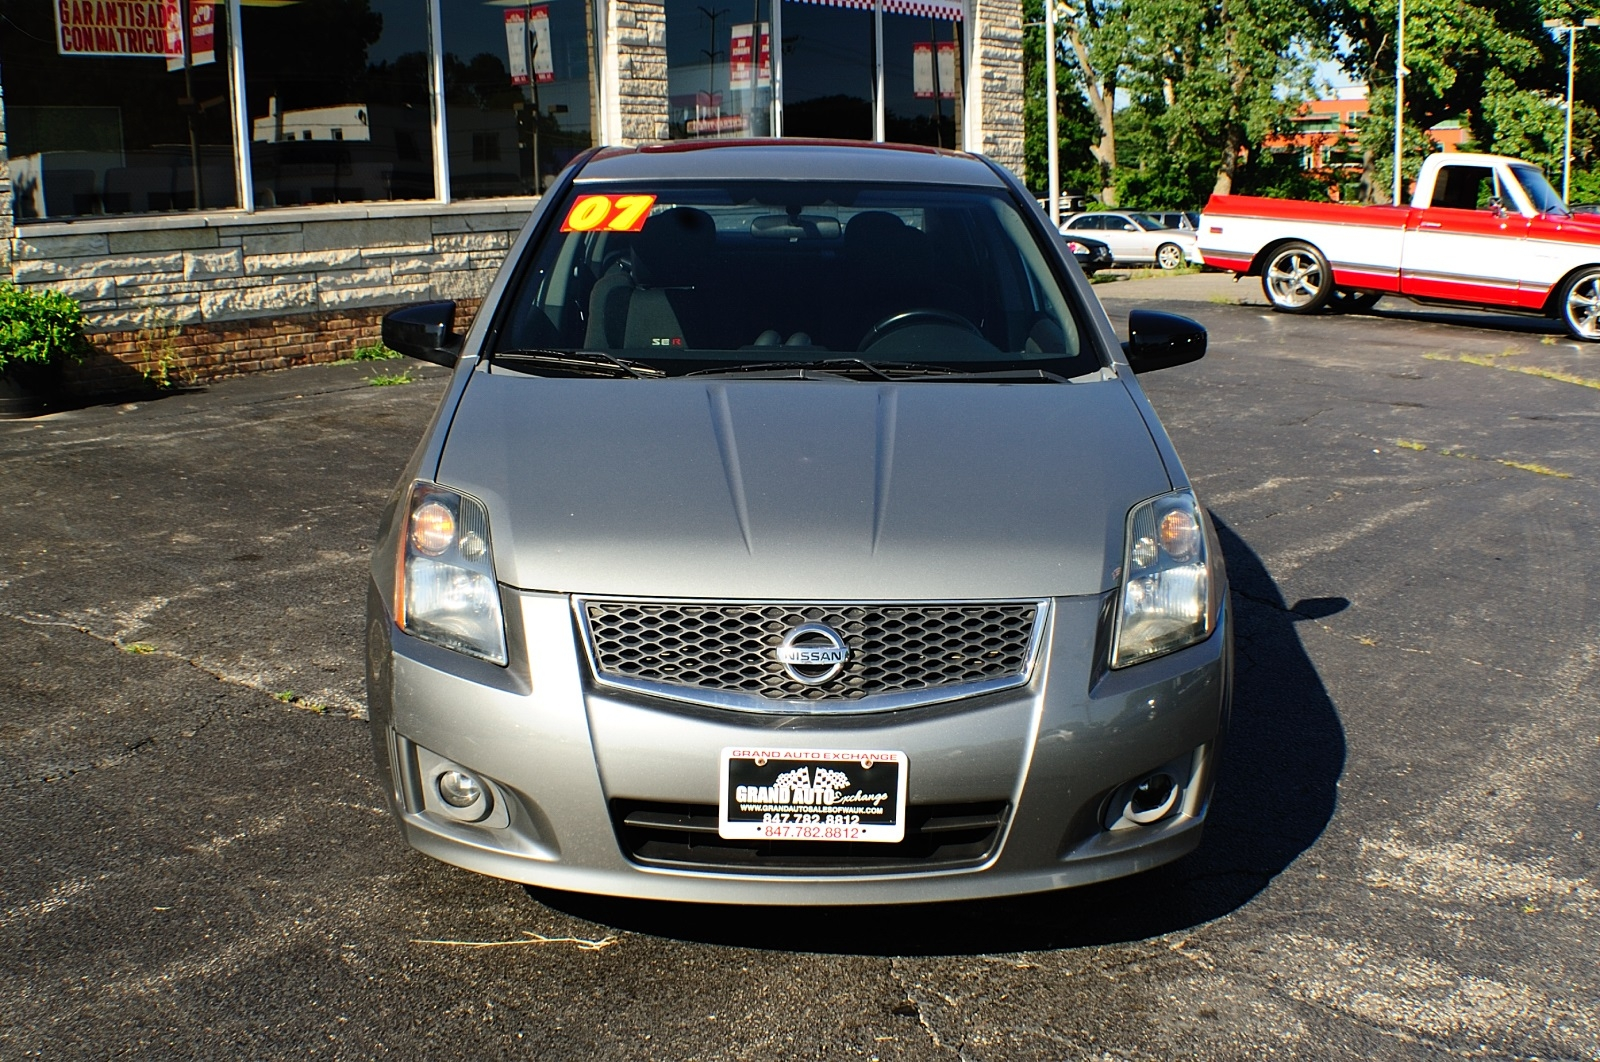 2007 Nissan Sentra SER Gray Sedan Used Car Sale Gurnee Kenosha Mchenry Chicago Illinois